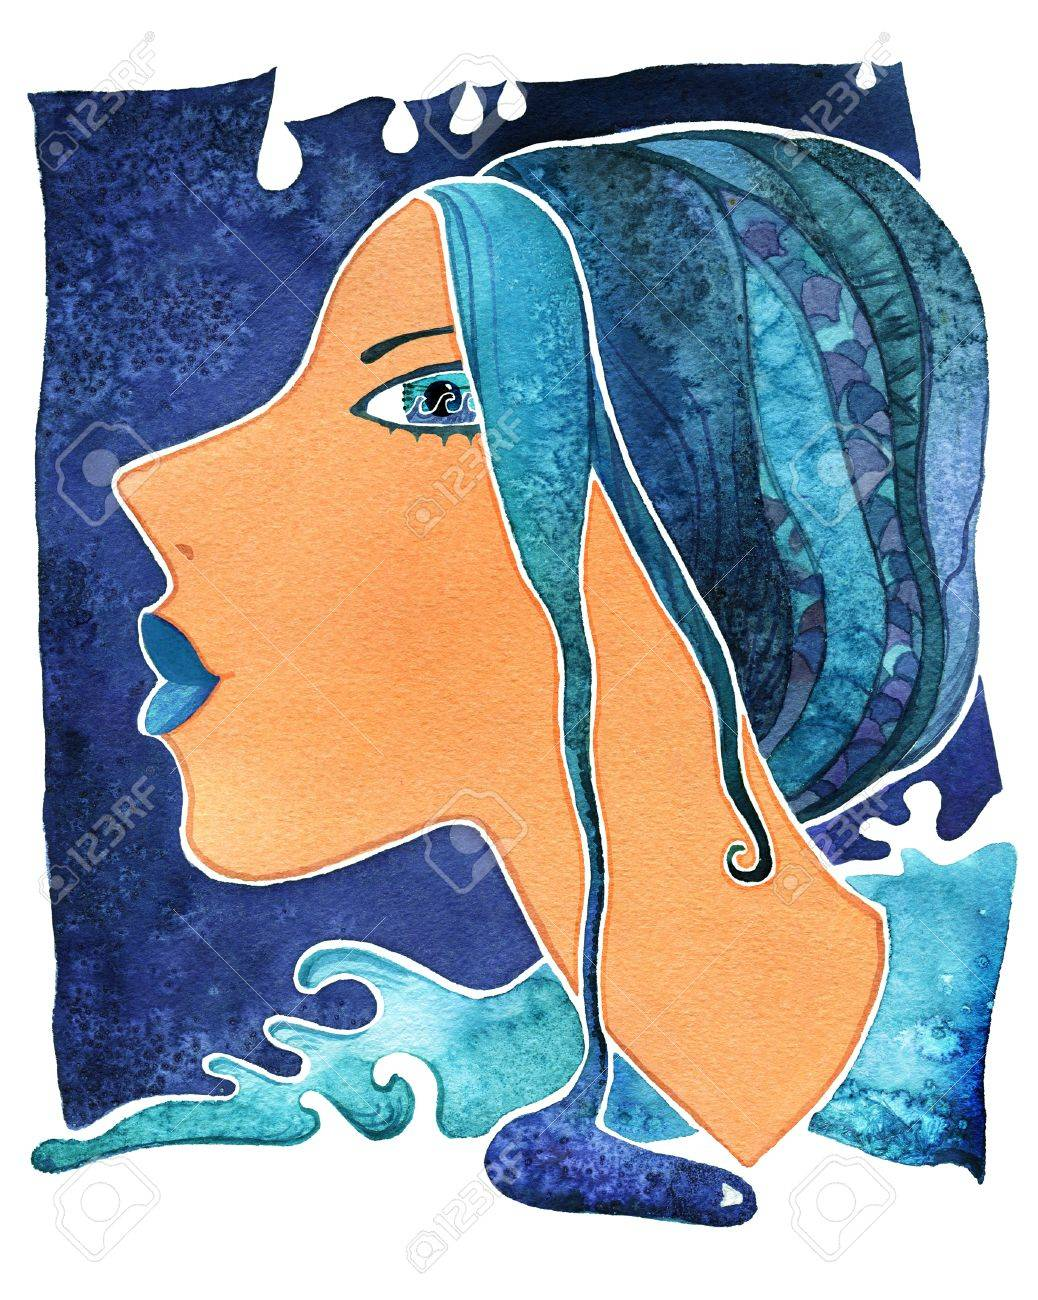 Face girl as astrology symbol Aquarius on pattern background